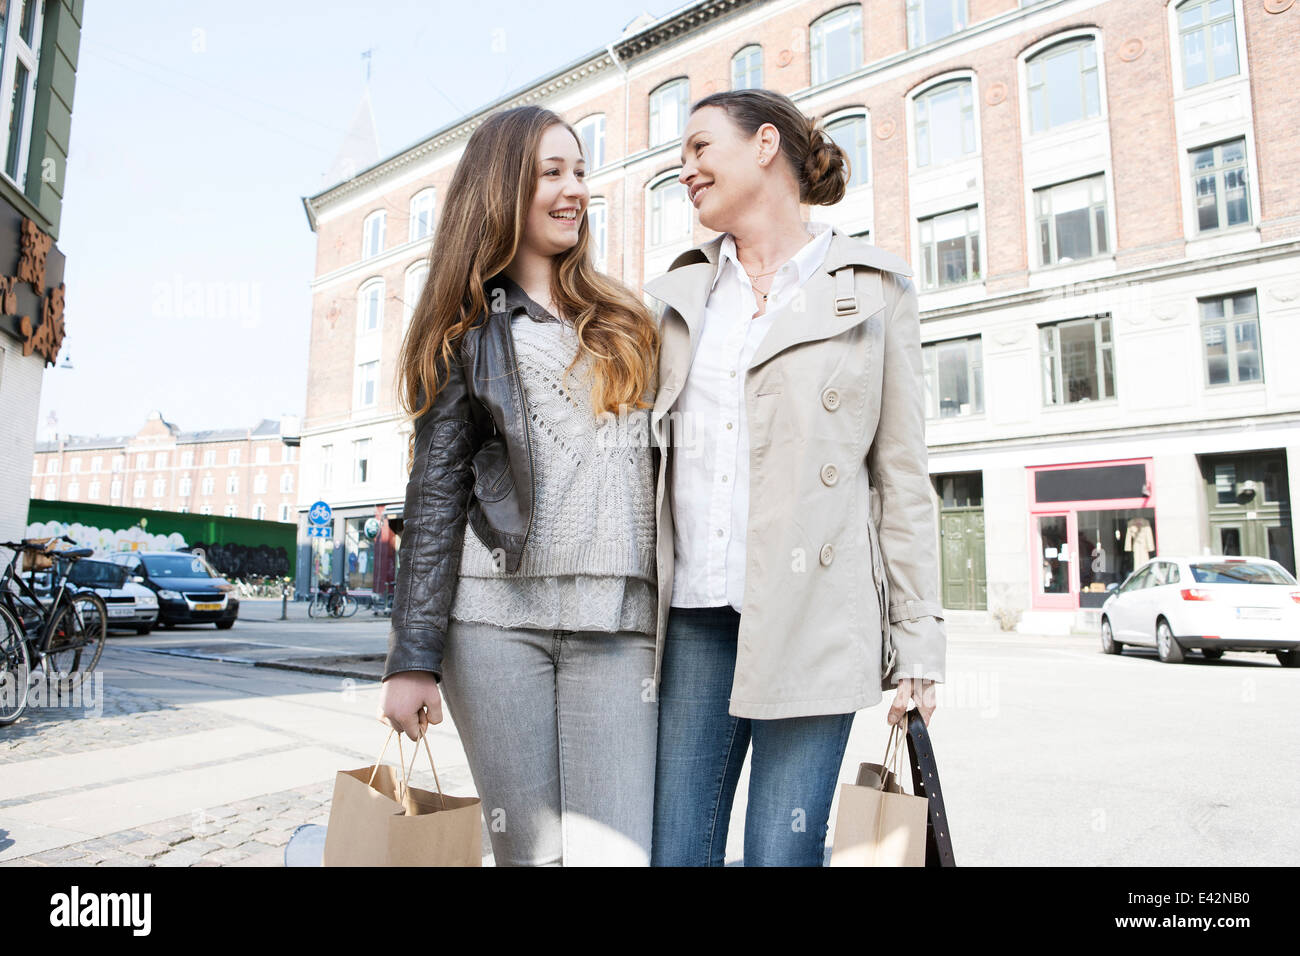 Mother and teenage daughter shopping on city street - Stock Image